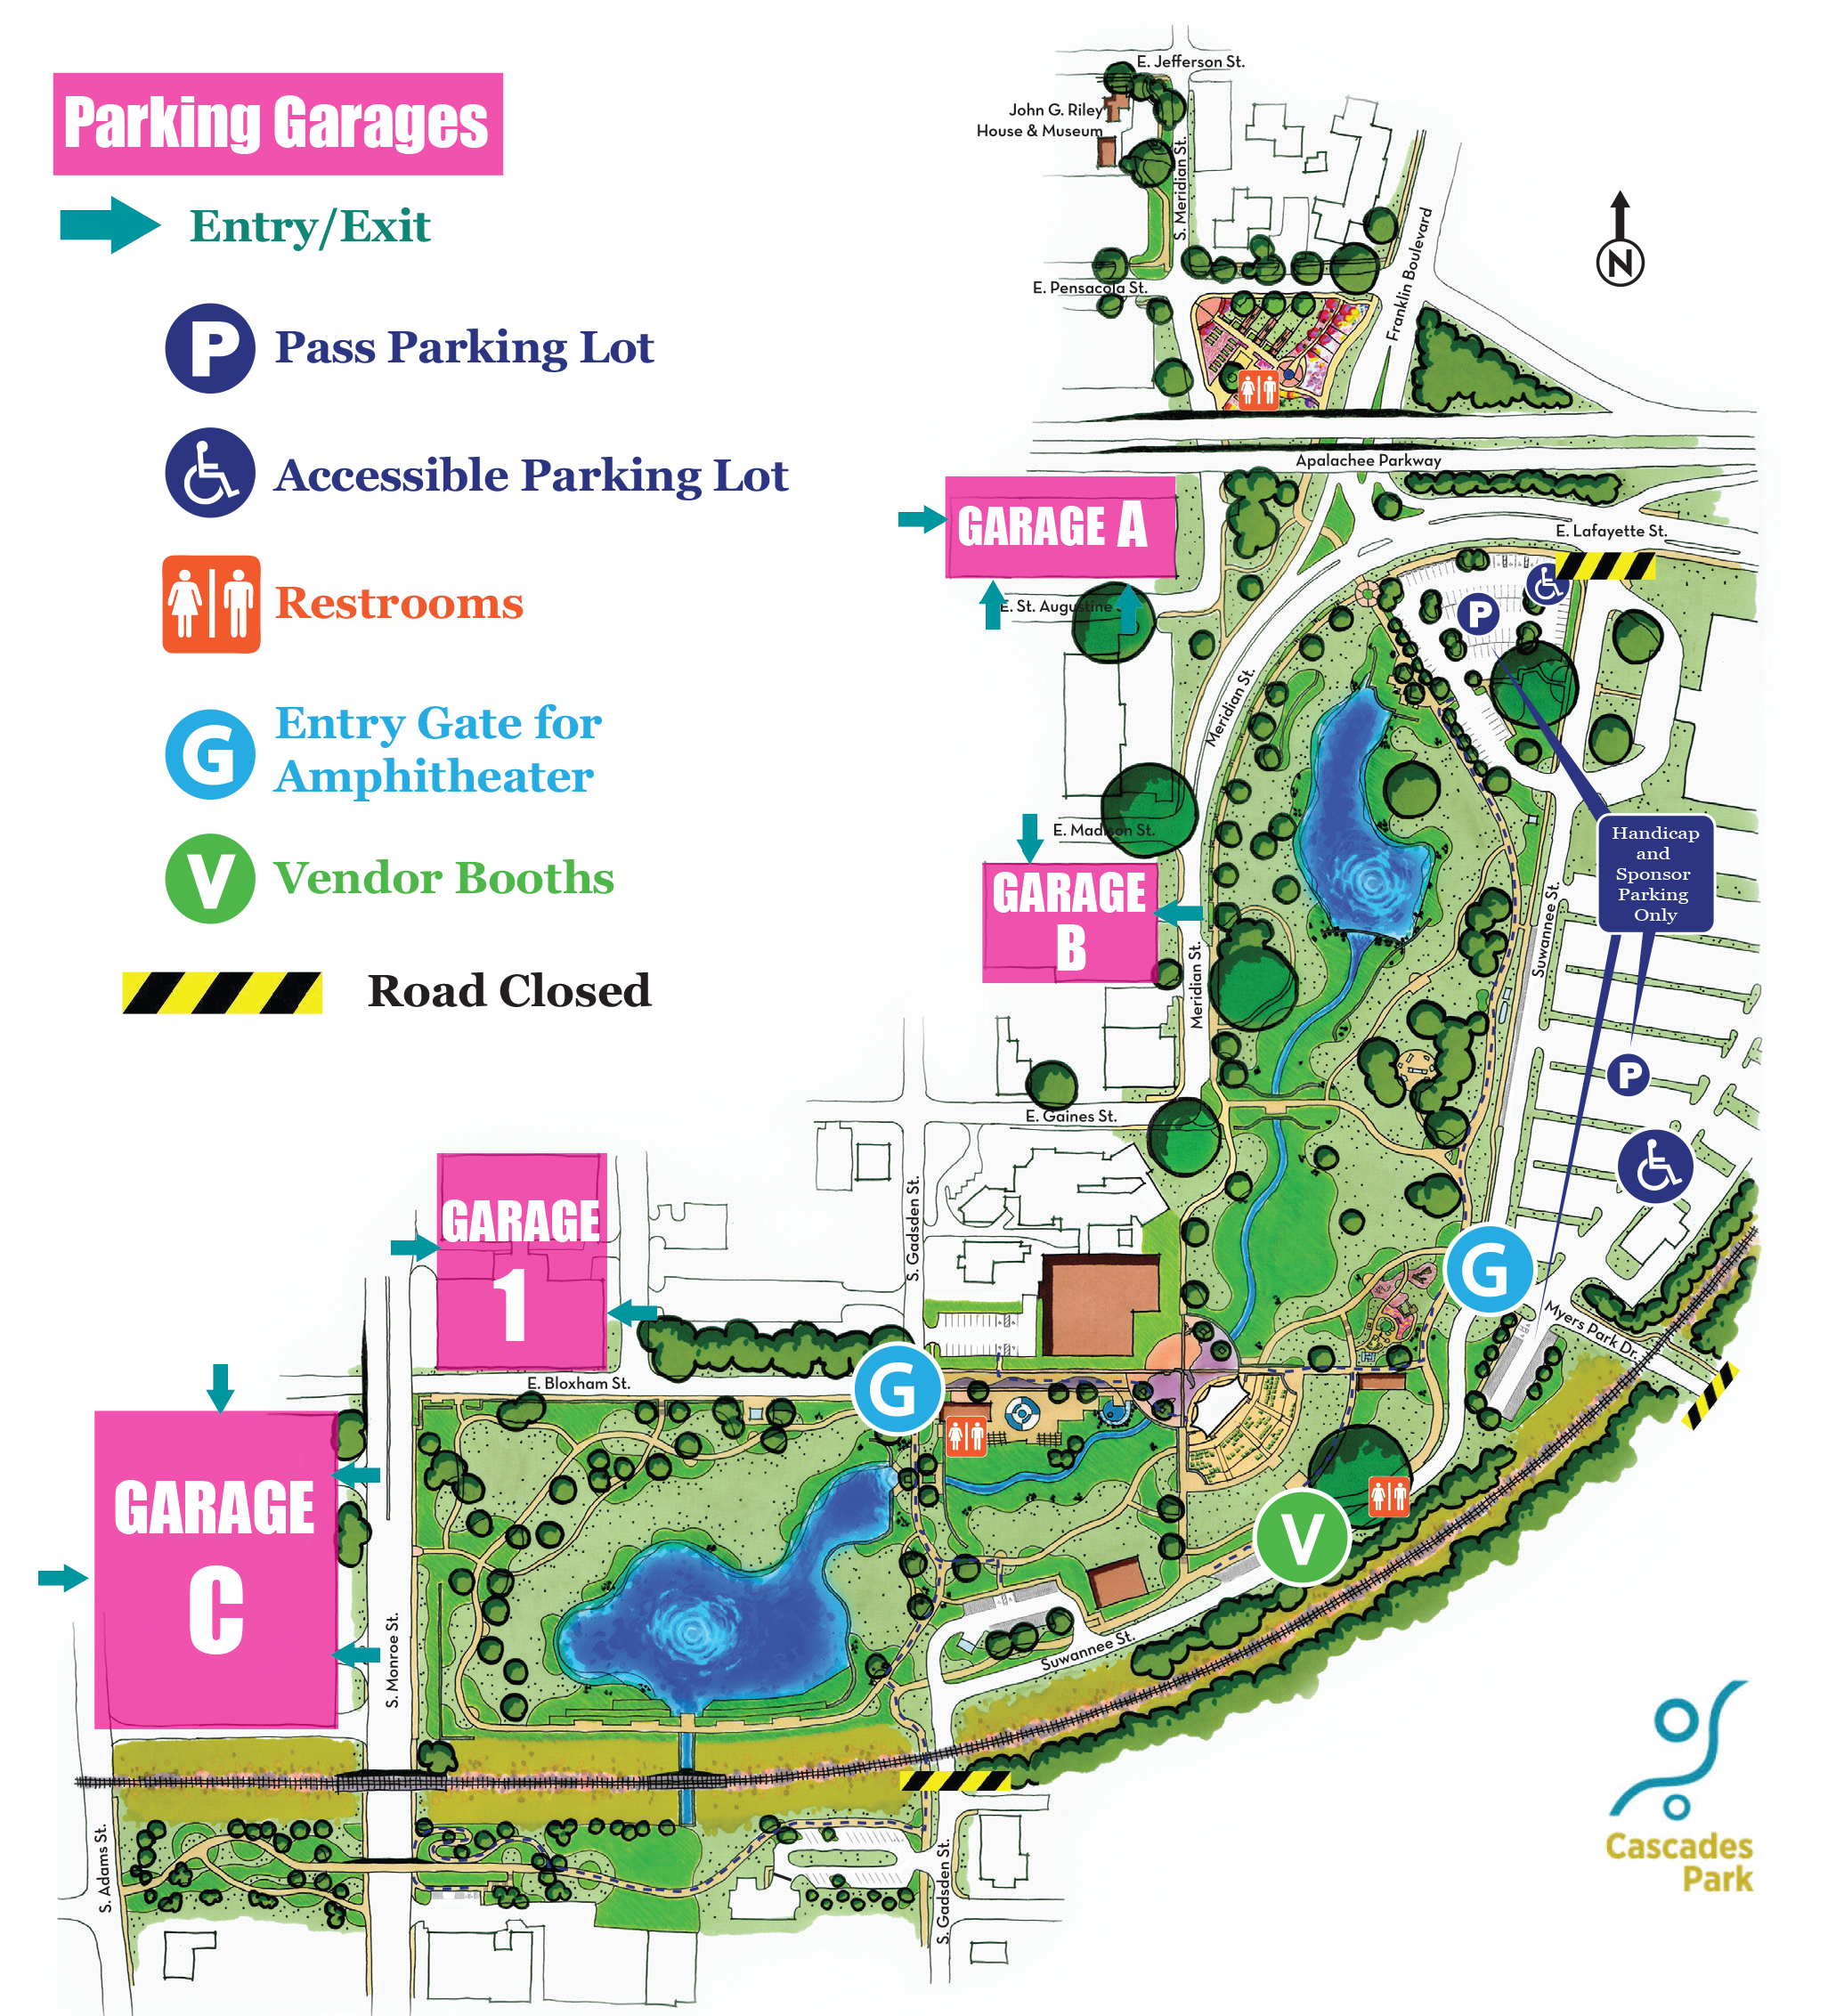 Parking for Events at Capital City Amphitheater at Cascades Park in